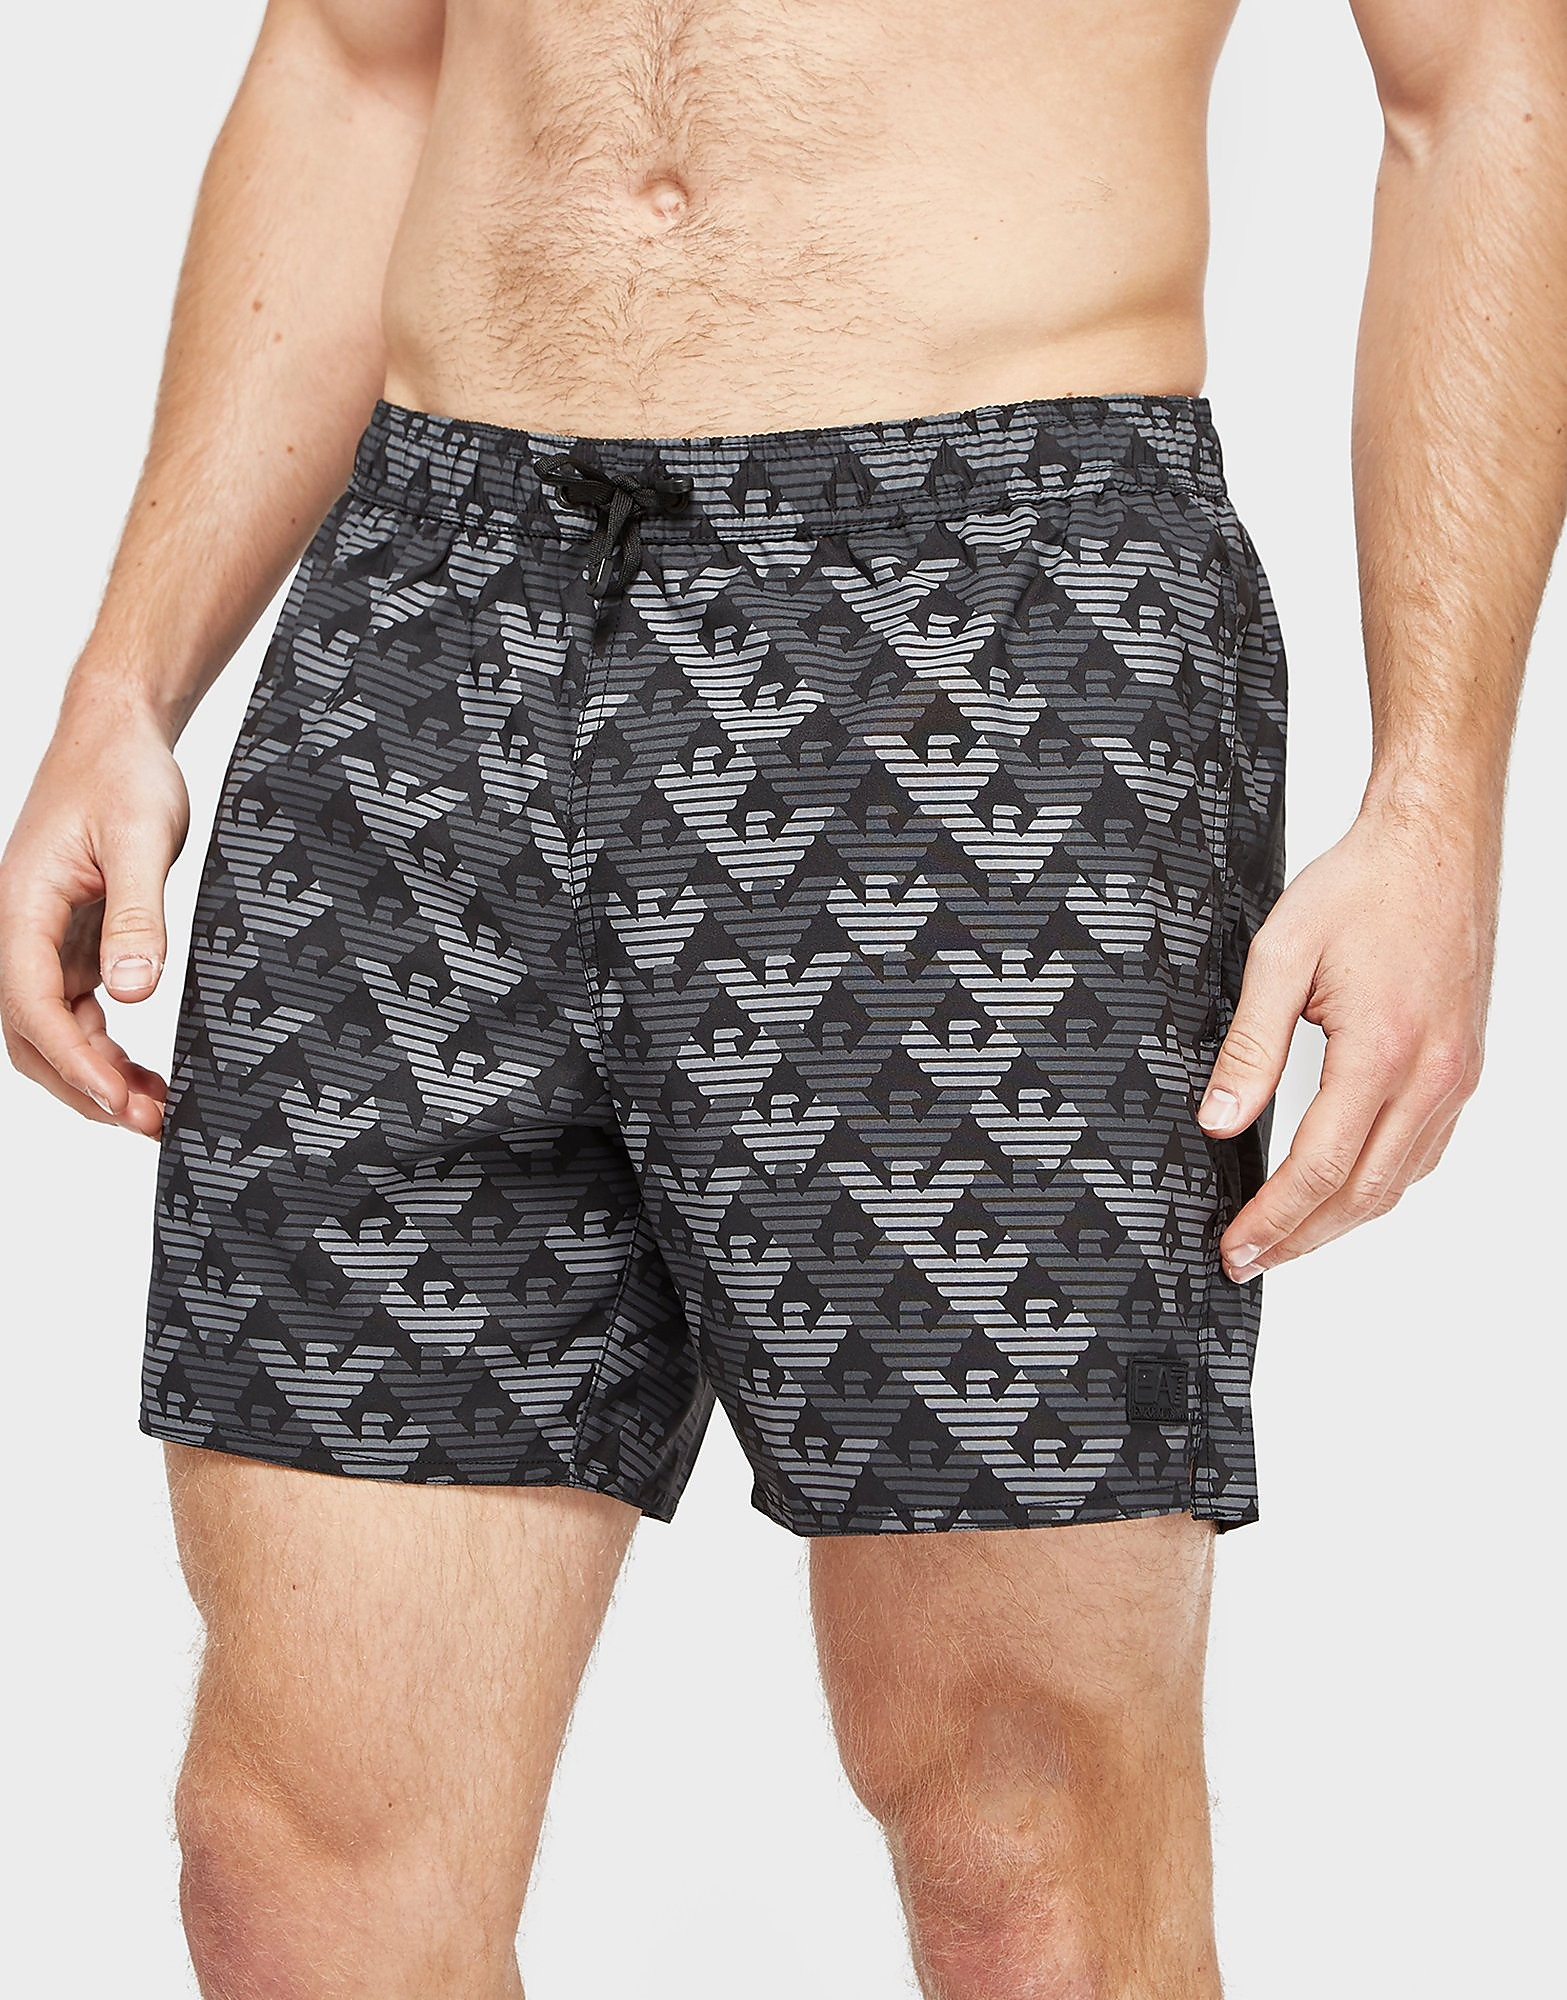 Emporio Armani EA7 Multi Eagle Swim Shorts